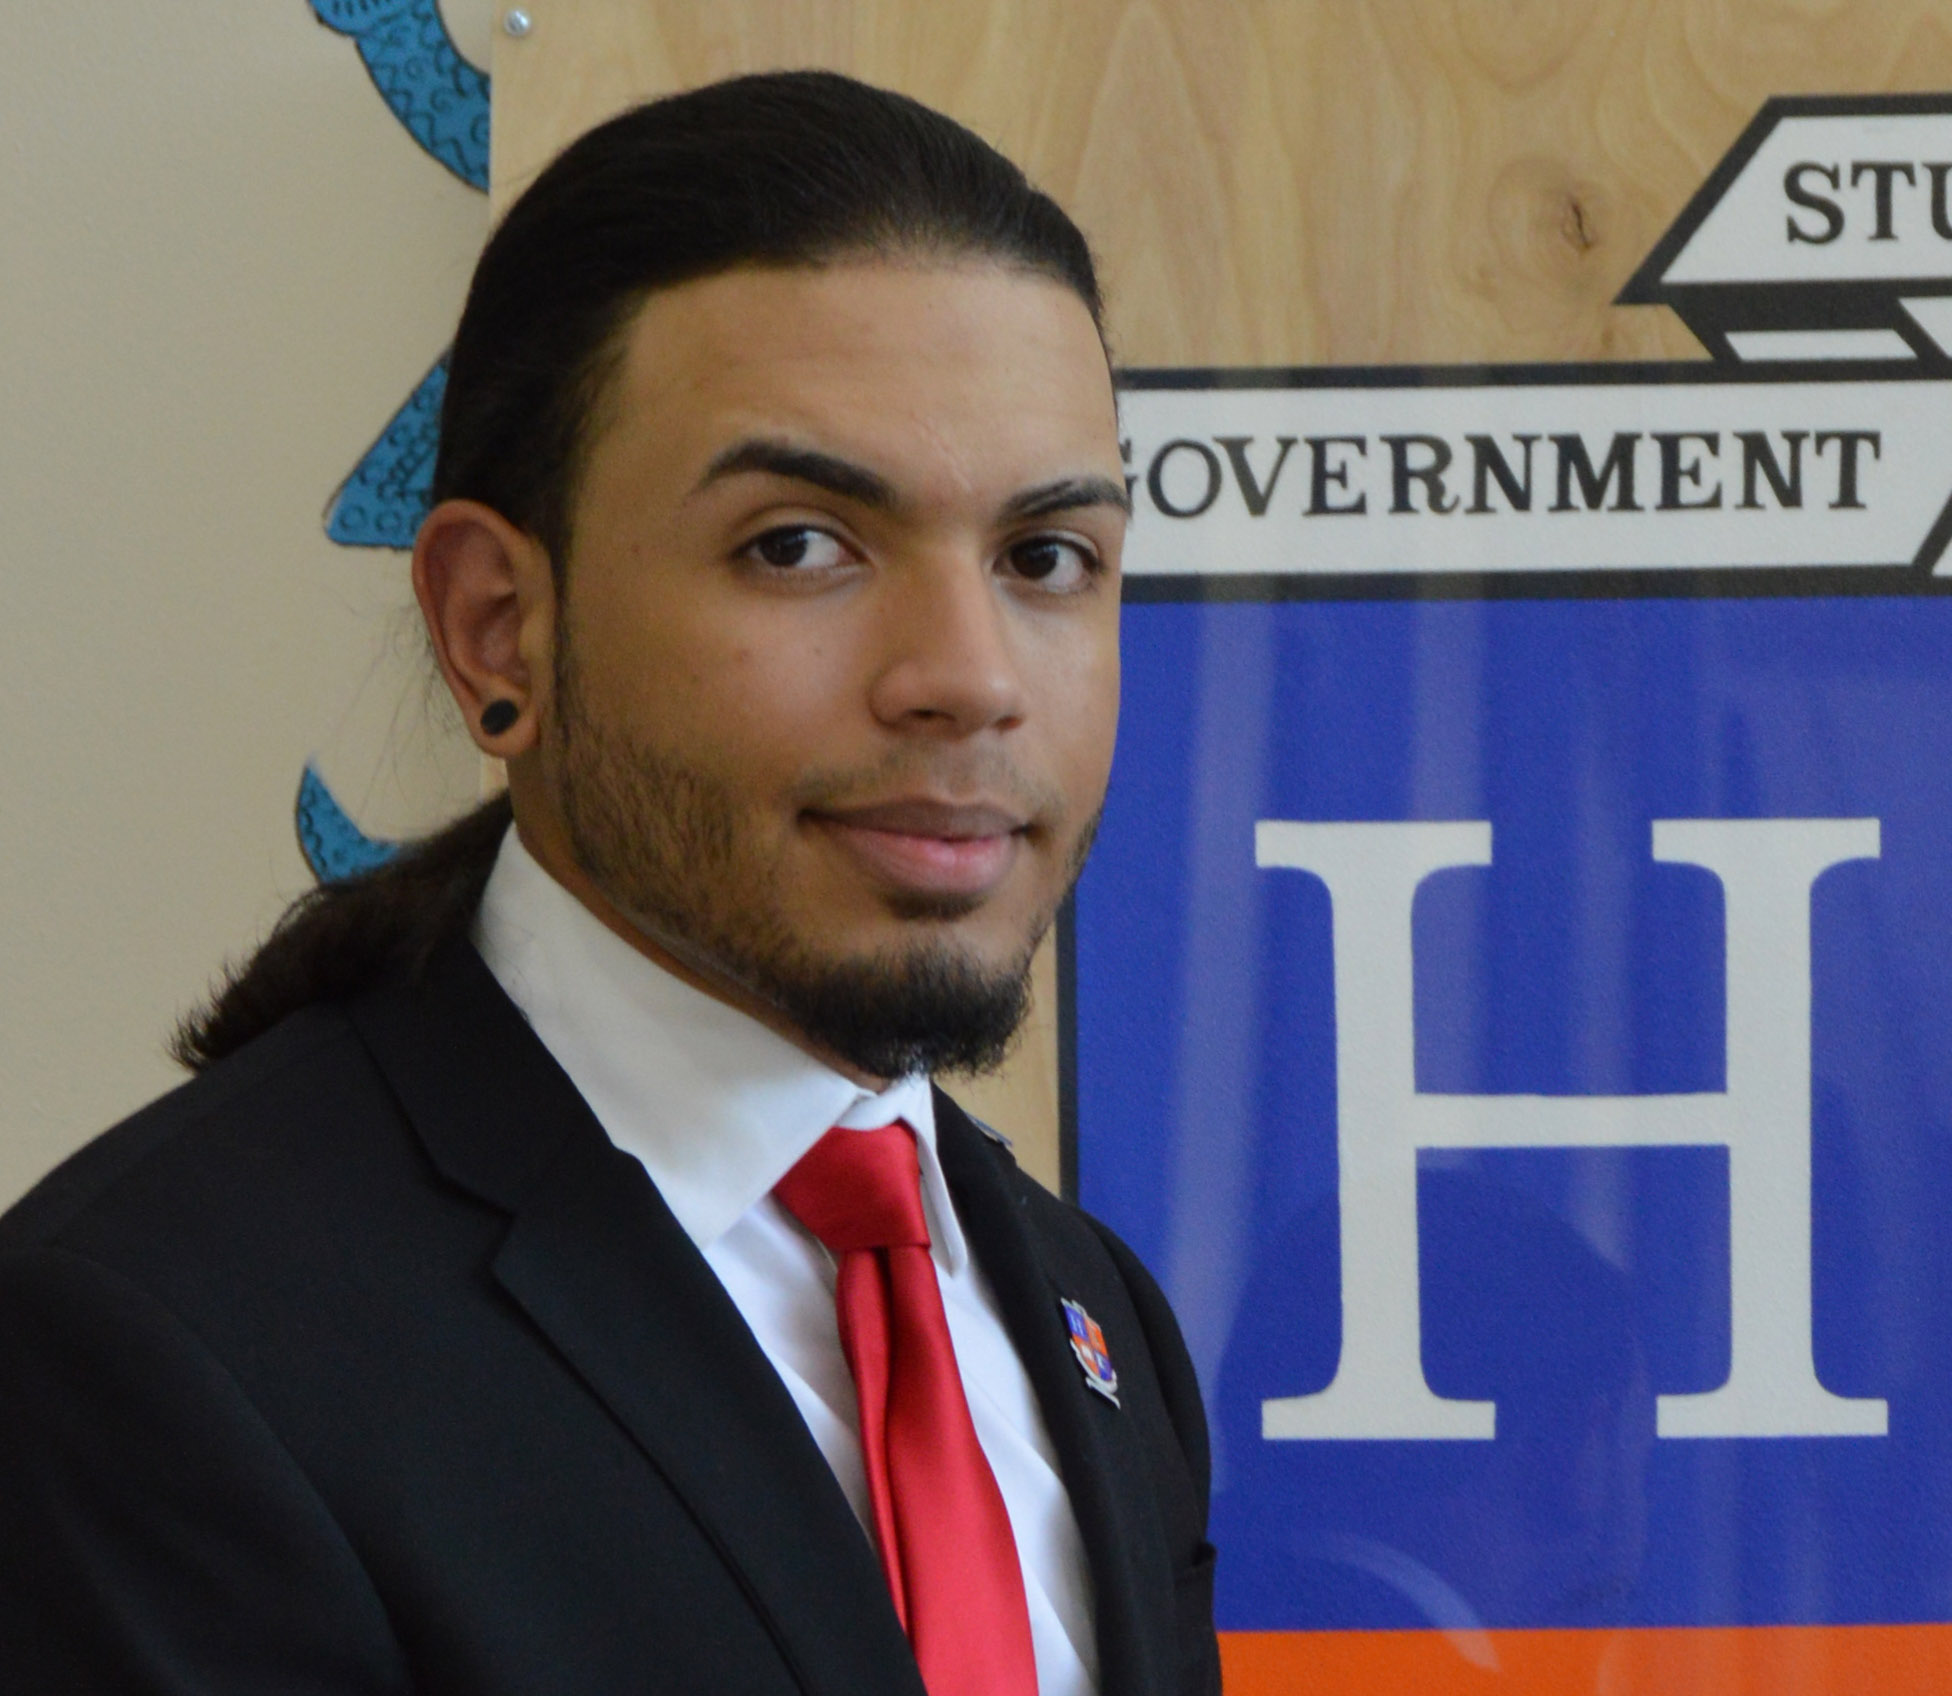 Pedro Minaya, Vice President for Student Affairs